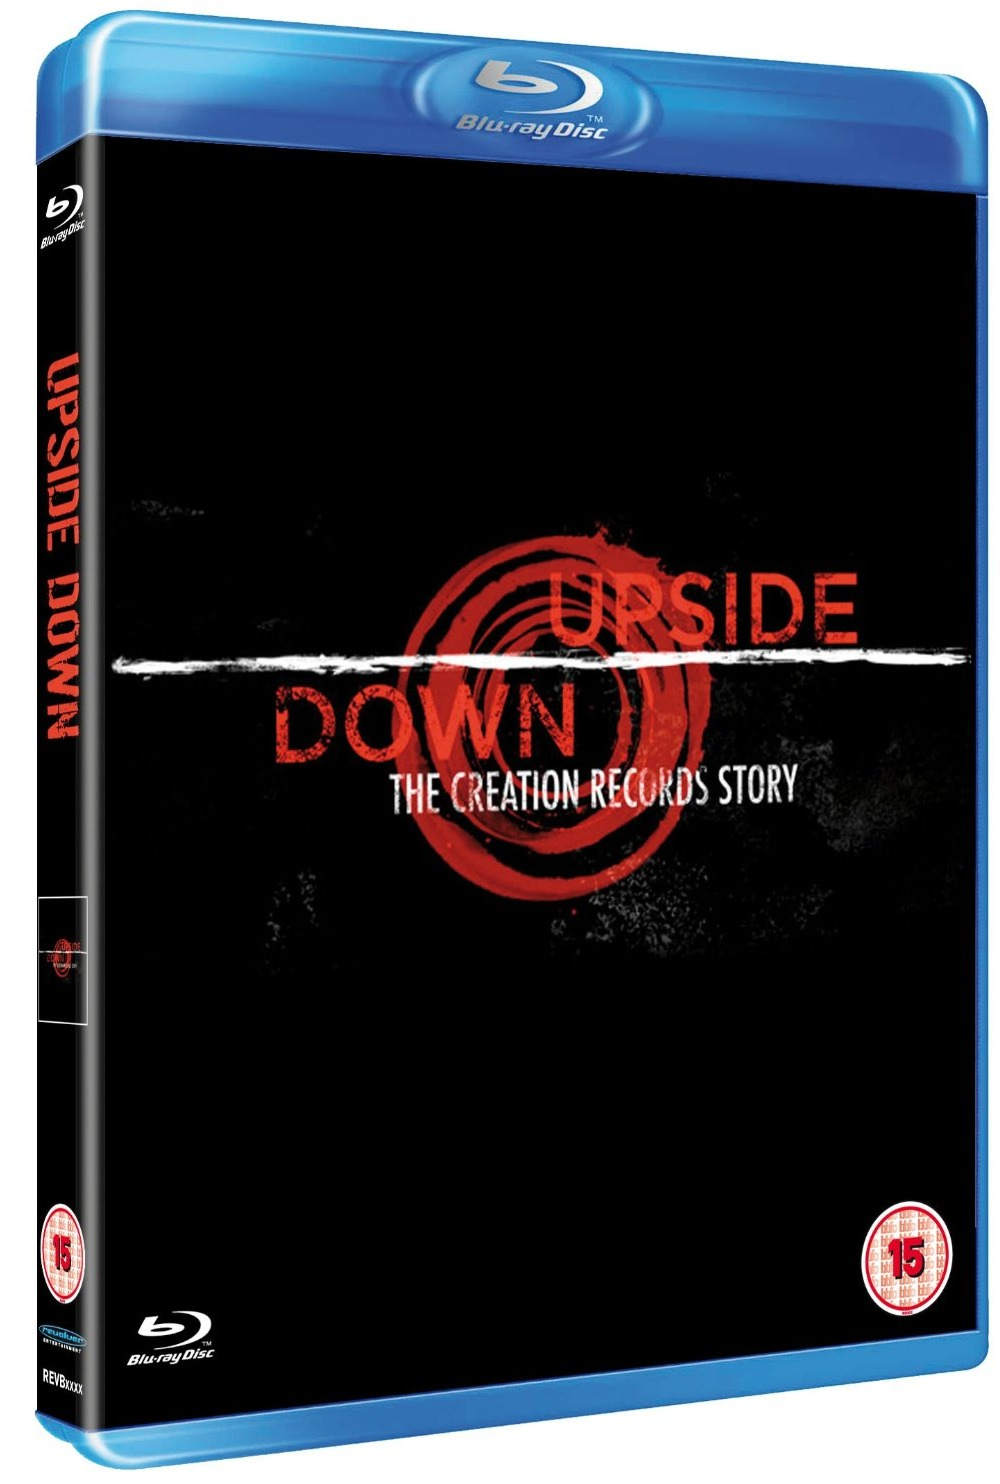 Trailer: 'Upside Down: The Creation Records Story,' out on DVD/Blu-ray in U.K. in May